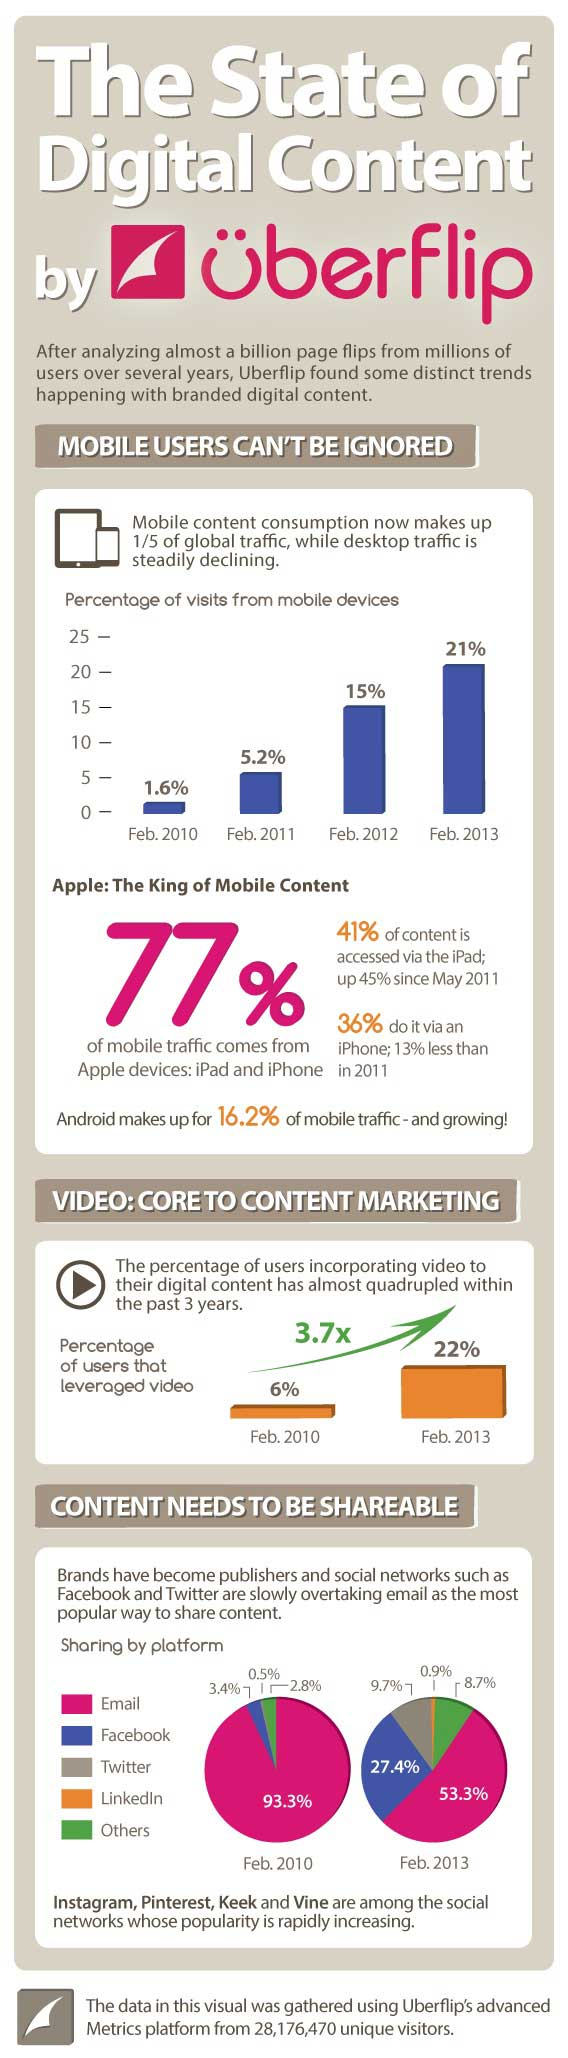 The State of Digital Content [Infographic]